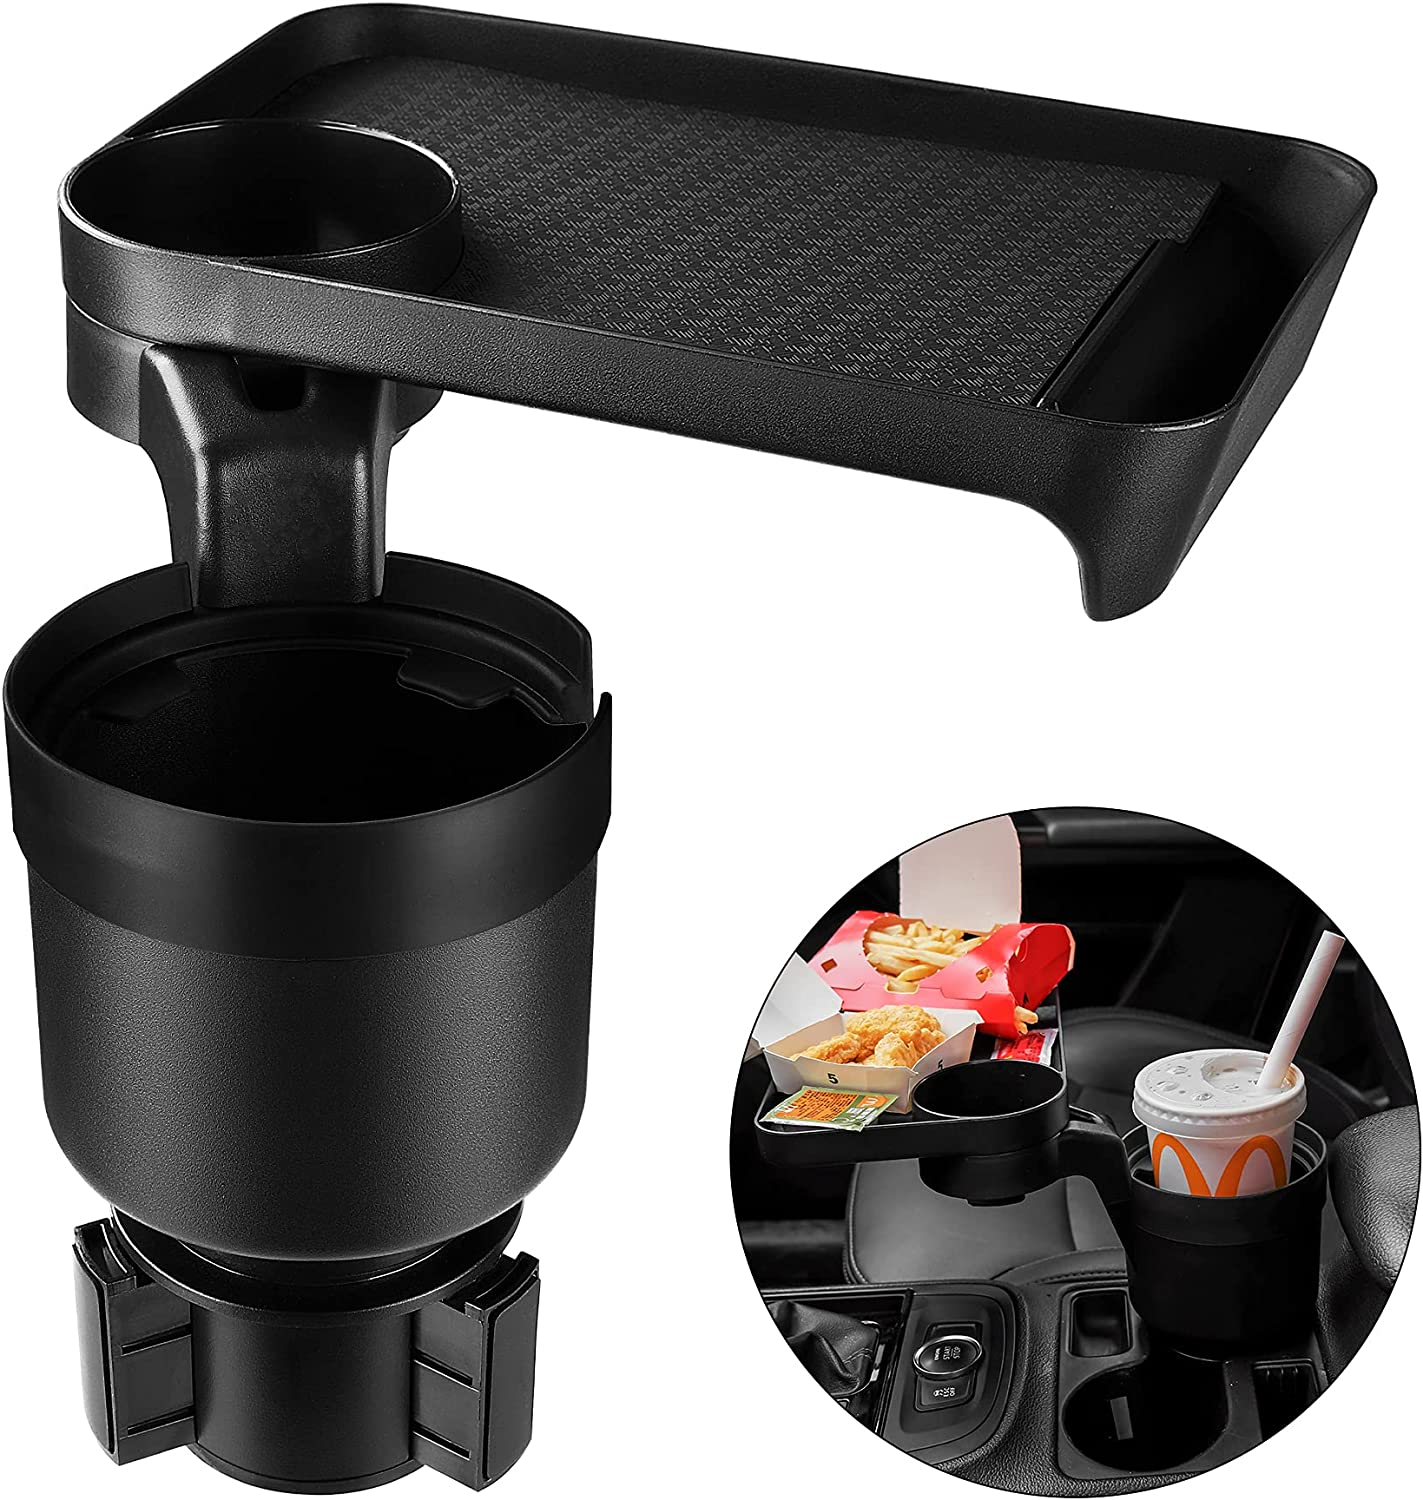 Car Cup holder Expander & Tray for Compatible with Yeti 20/26/30 oz, Hydro Flasks 32/40 oz, Nalgenes 30/32/38/48 oz, Camelbak 32/40 oz, Large Bottles in 3.4